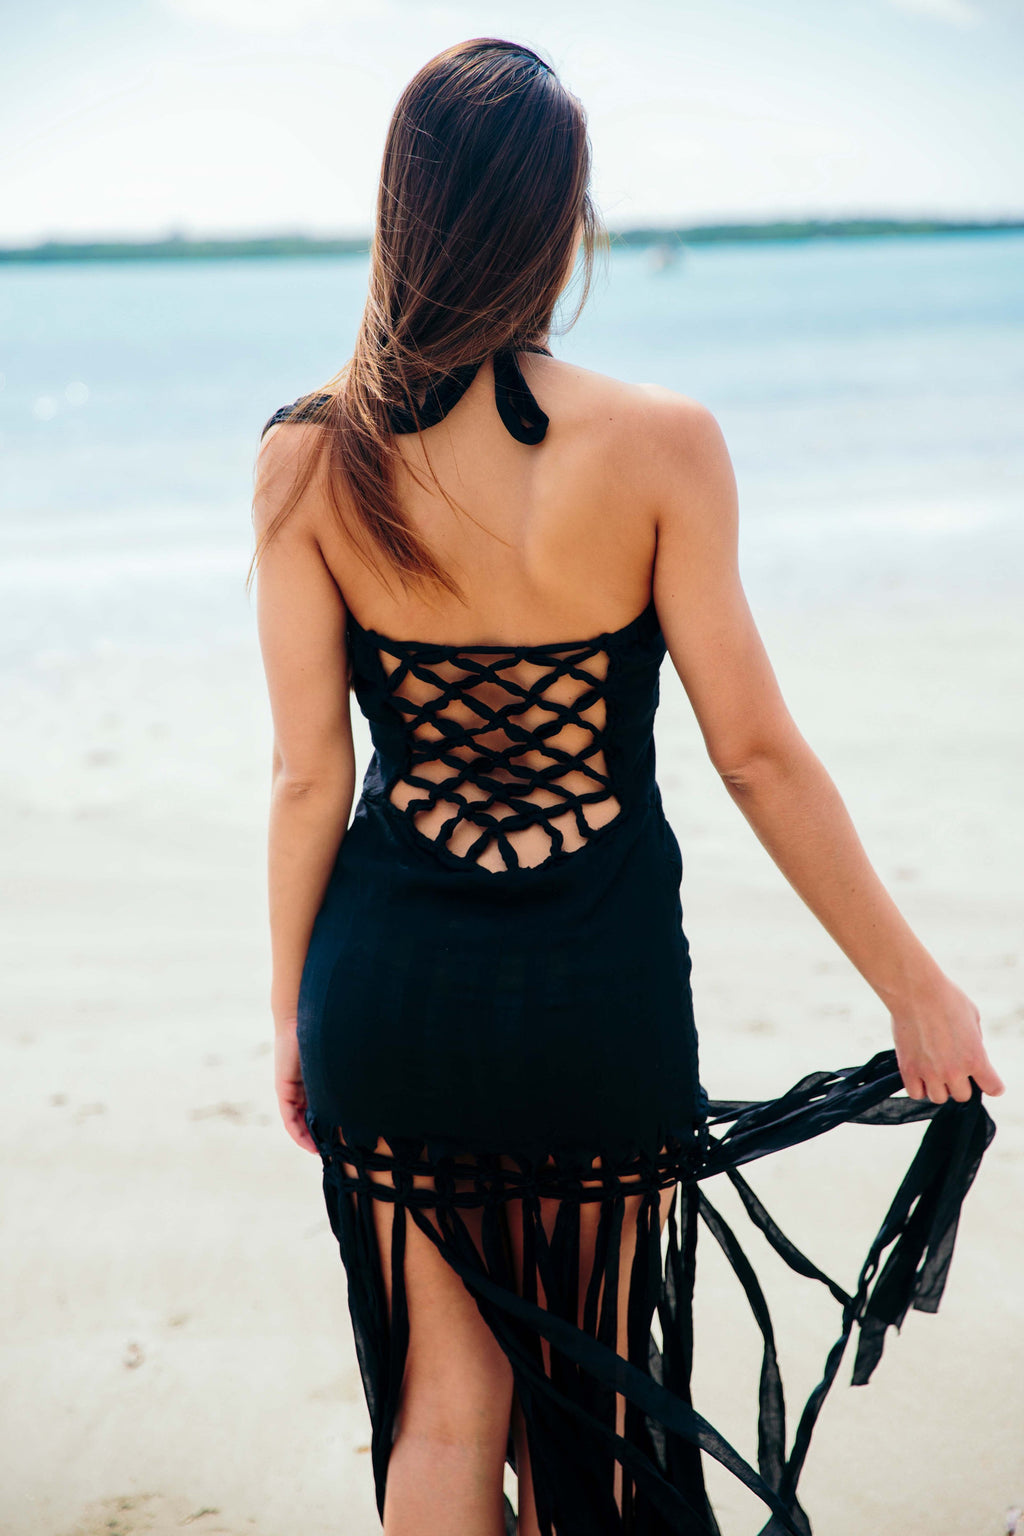 Takala Dress in Black - Boho Bum Island